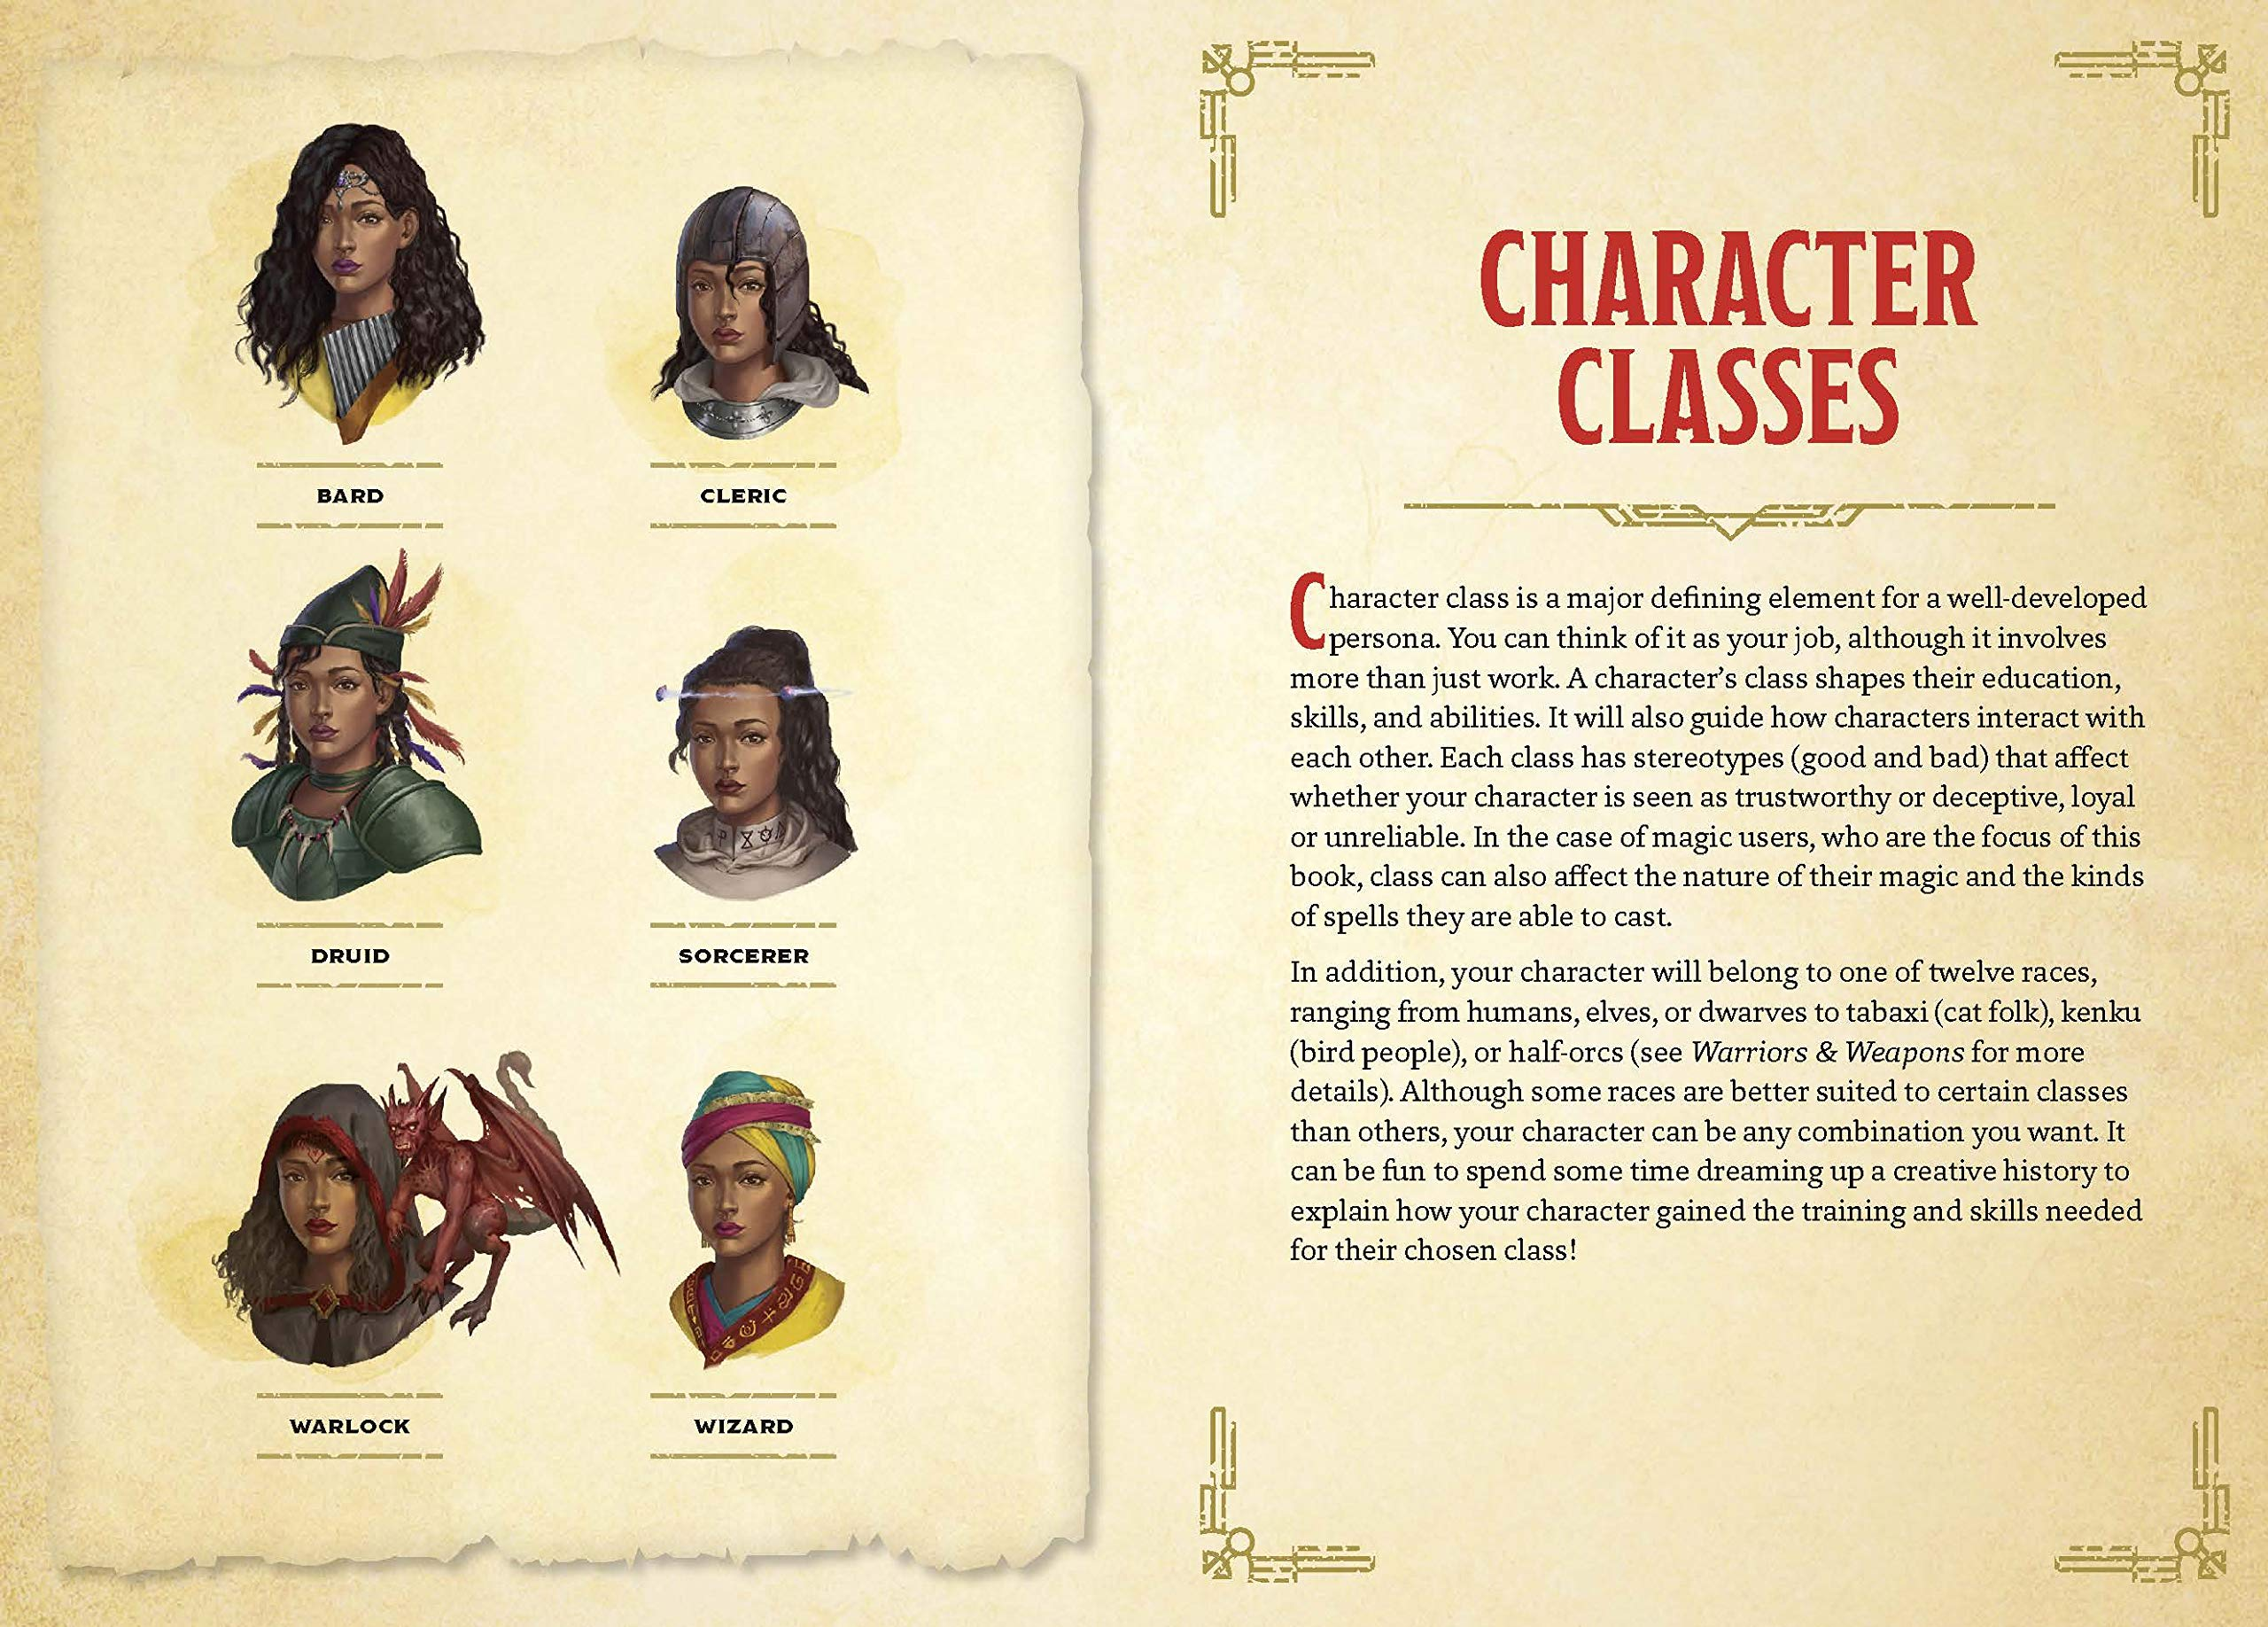 Warriors & Weapons - character classes